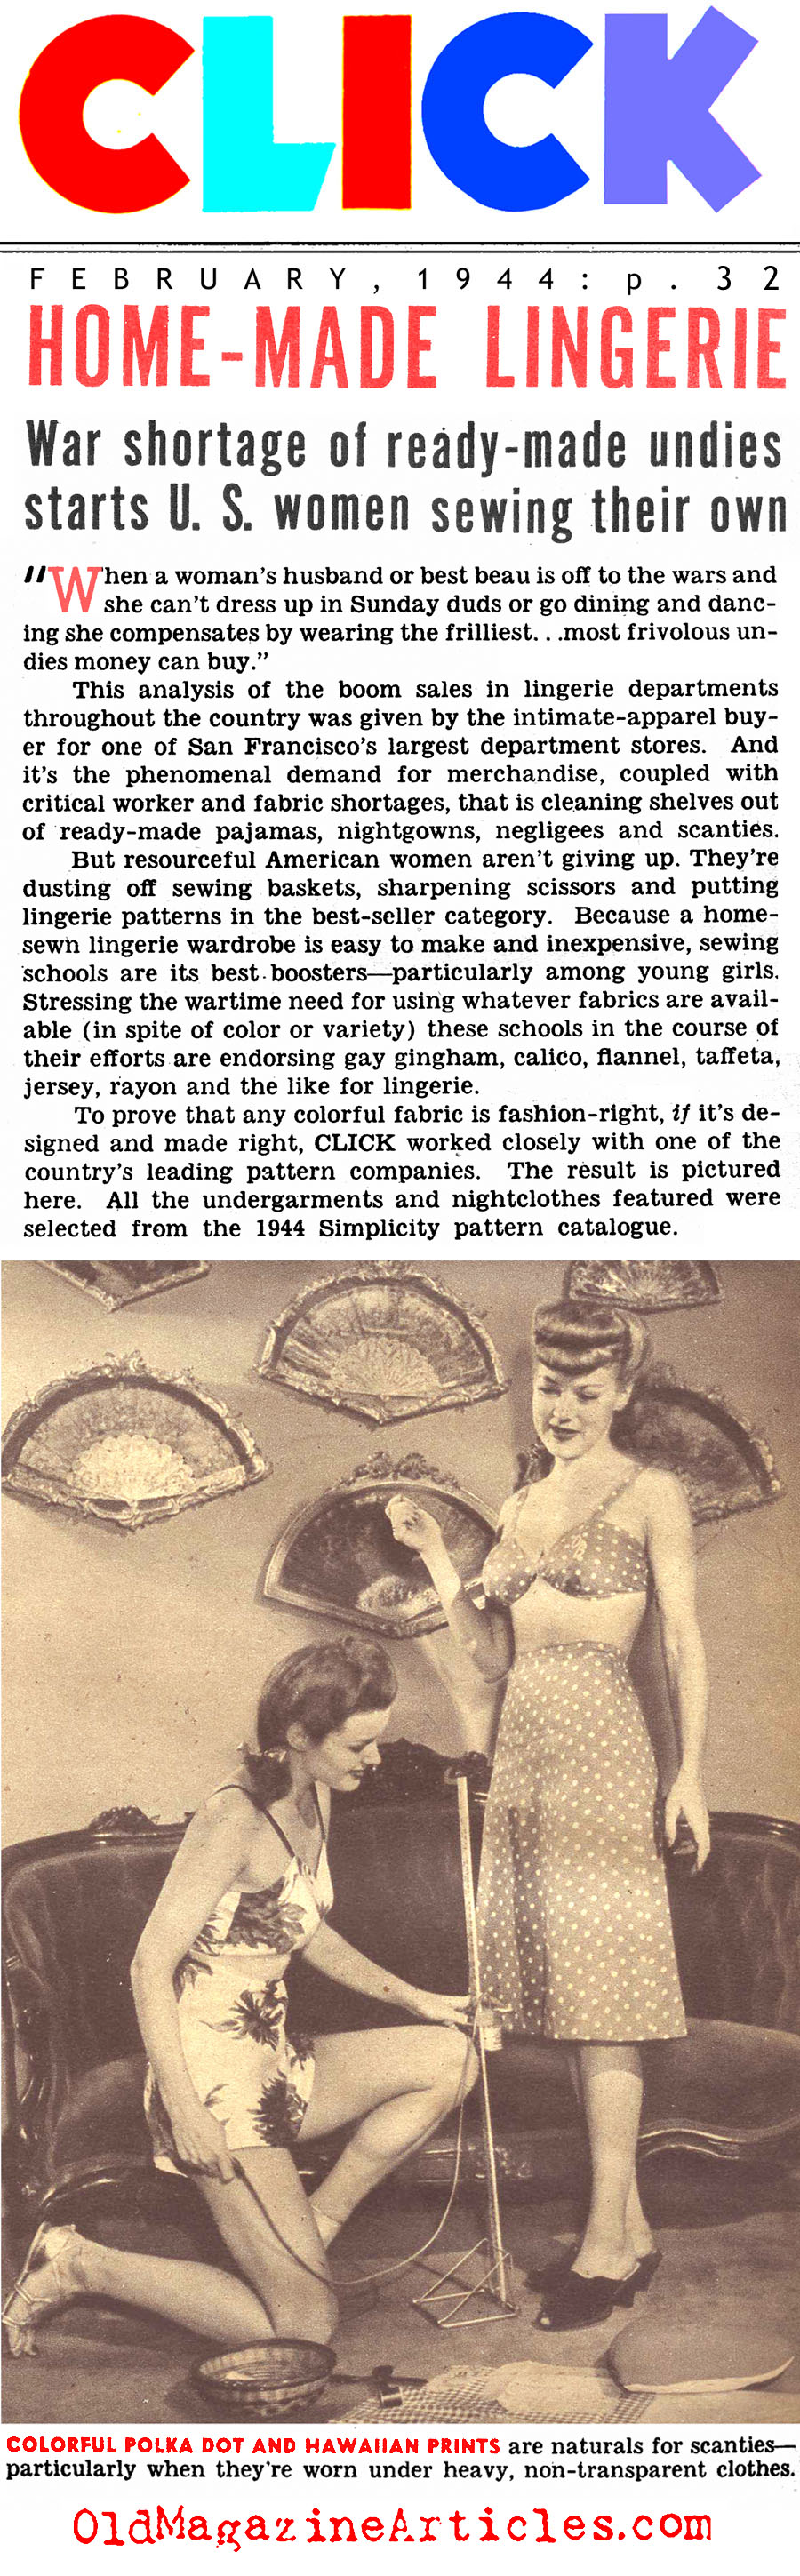 Home Front Lingerie (Click Magazine, 1944)